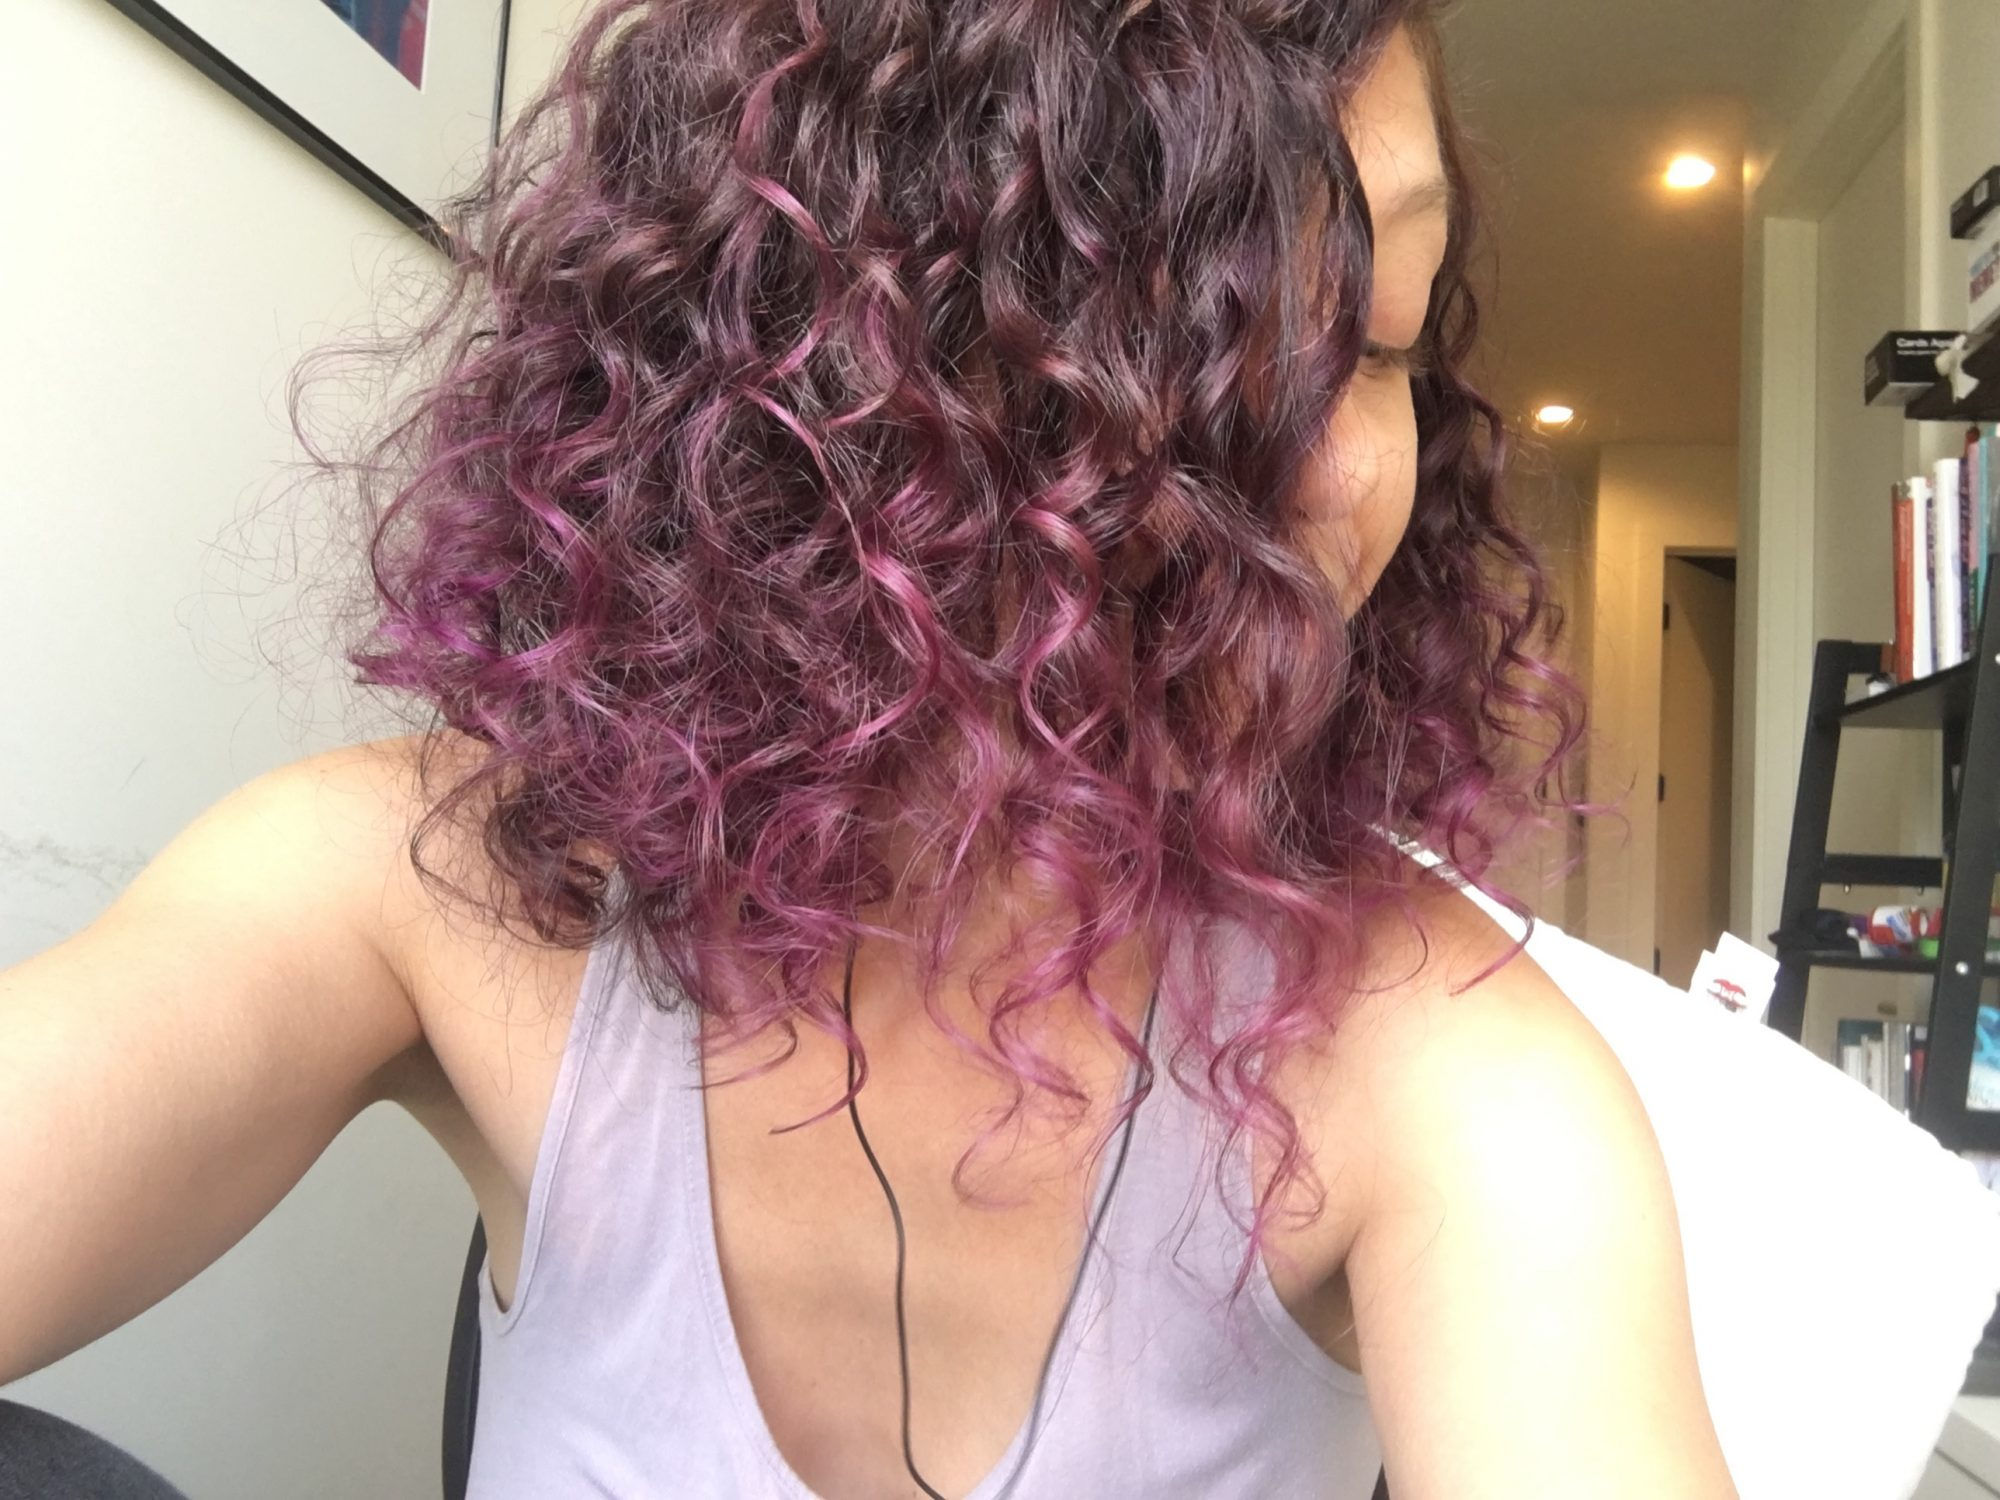 Writer Allie Strickler's hair after using John Frieda Frizz Ease Dream Curls Daily Styling Spray